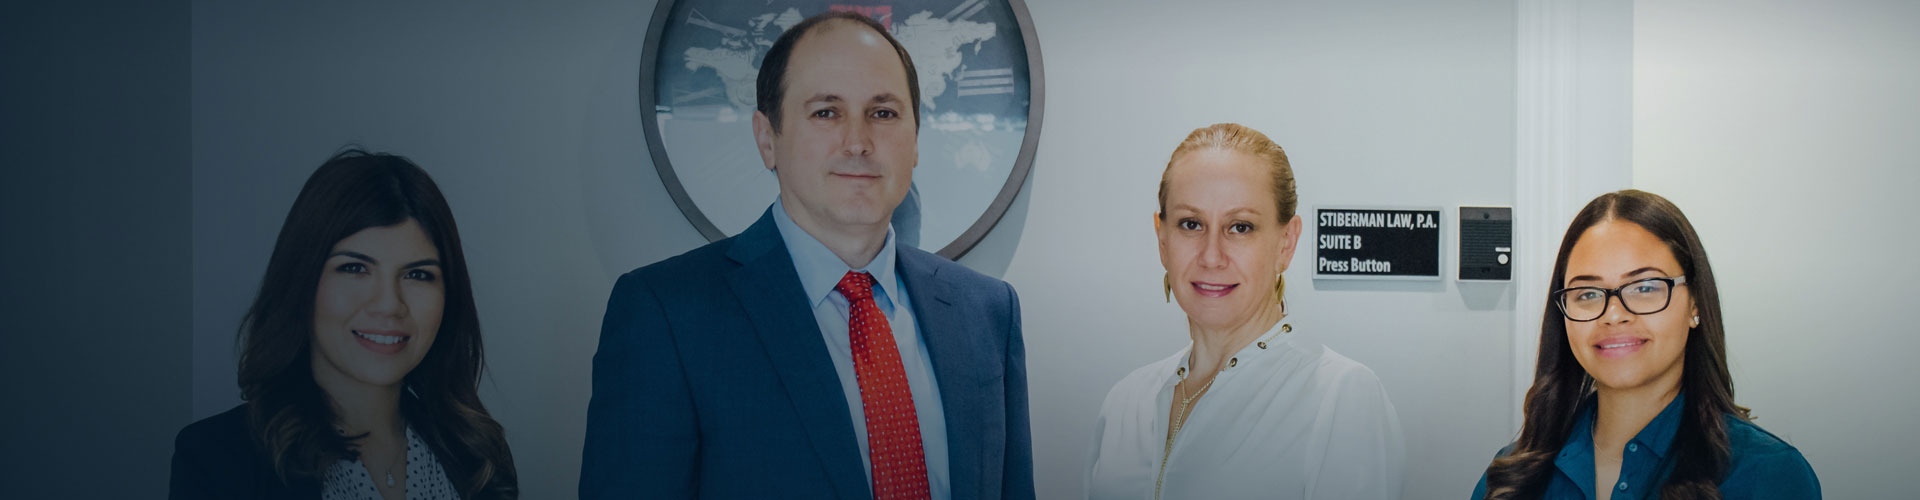 Fort Lauderdale Bankruptcy Attorneys - Stiberman Law Firm